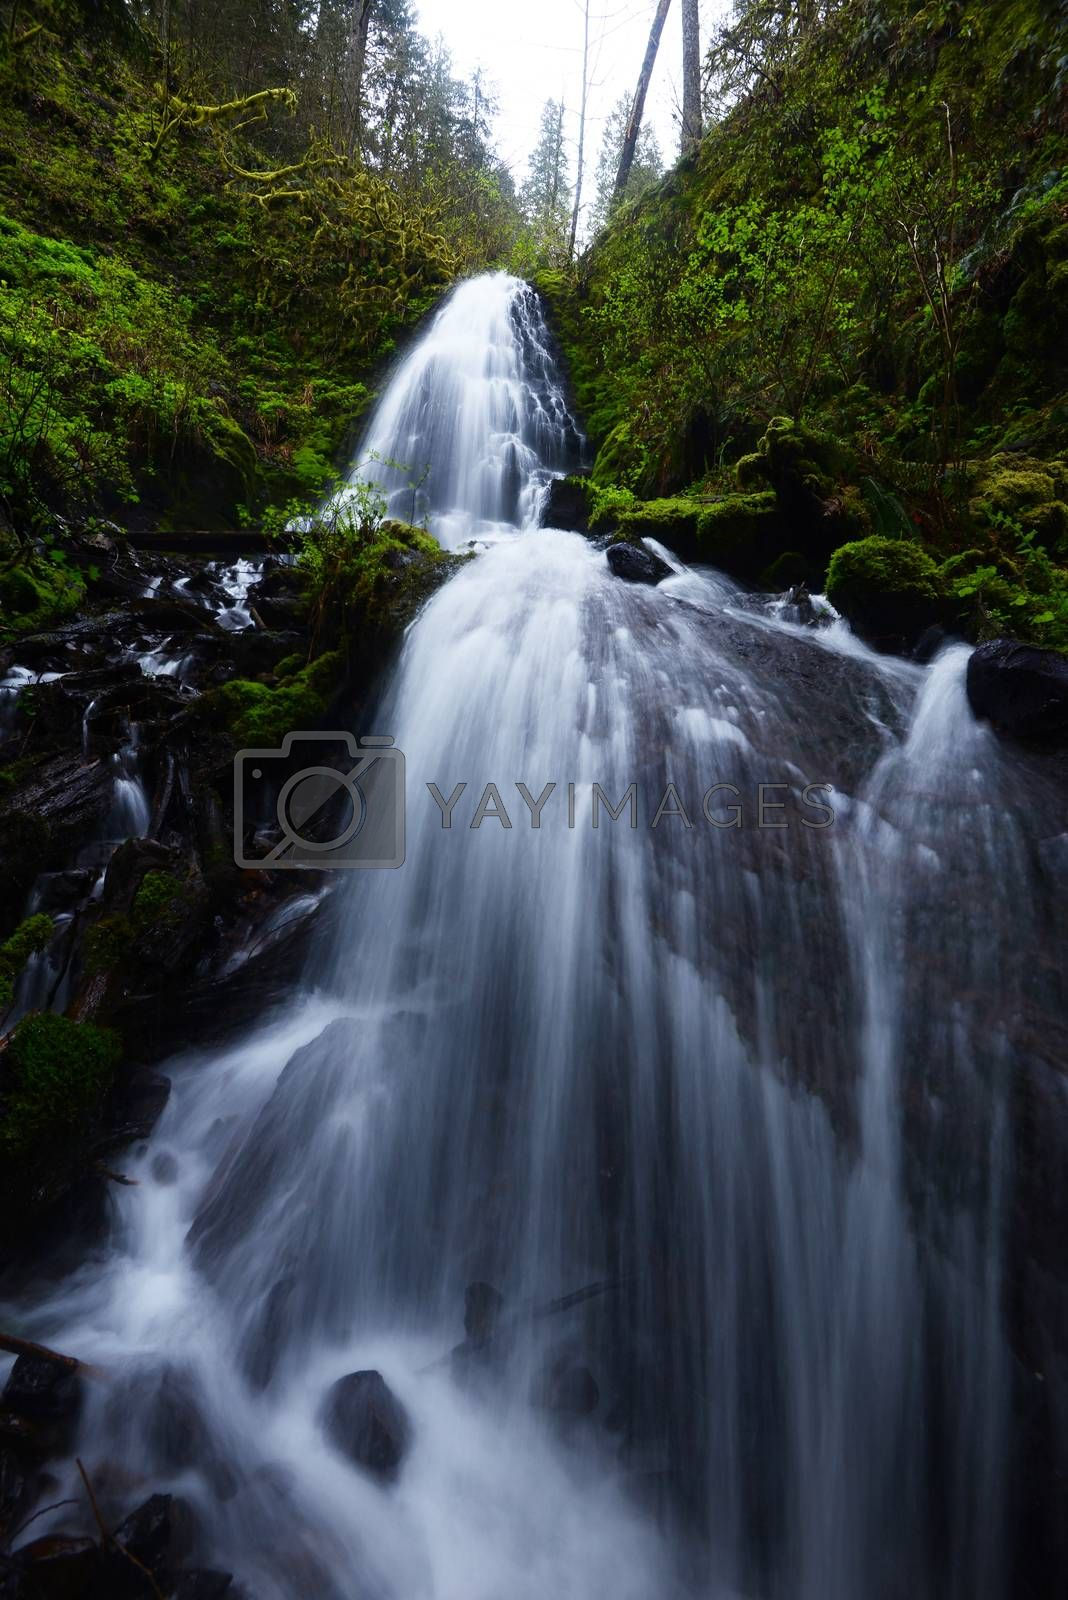 Royalty free image of Fairy Falls in Columbia Gorge Oregon by porbital